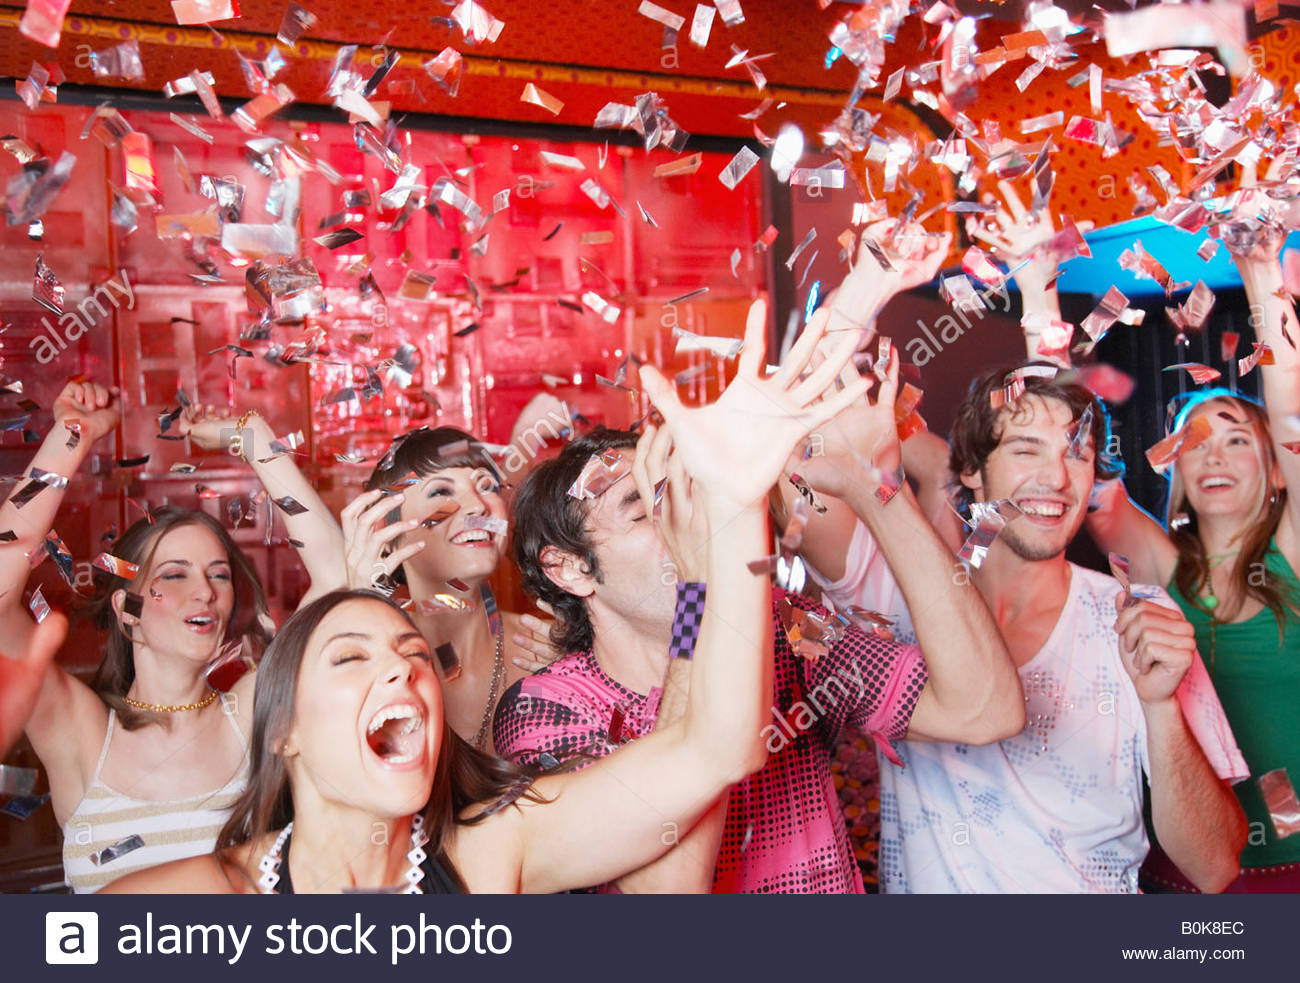 group of people in a nightclub partying and throwing confetti - Stock Image